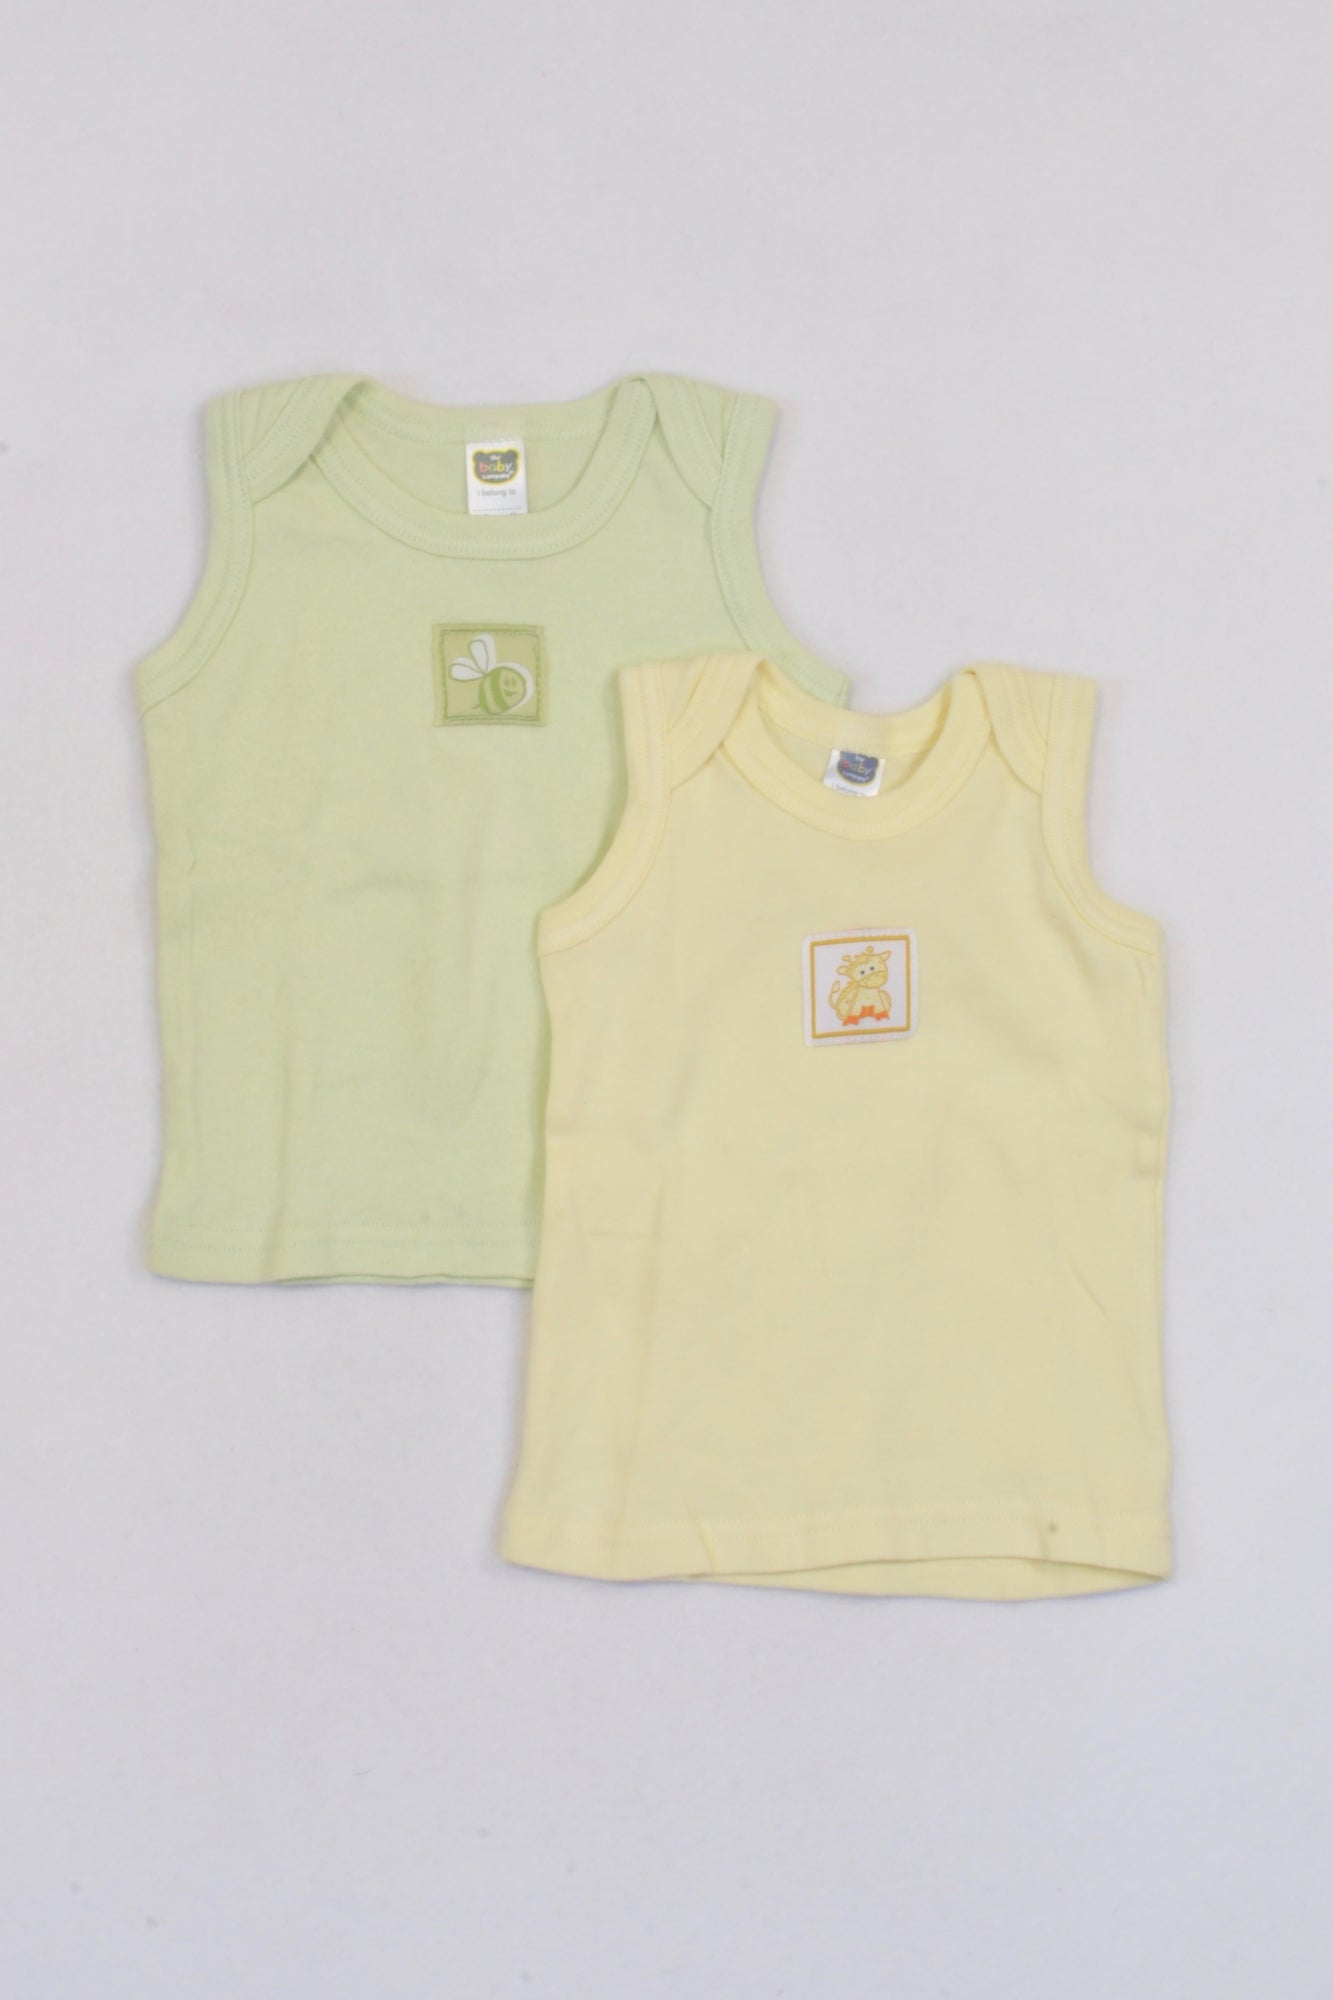 Ackermans 2 Pack Green & Yellow Vest Tops Unisex 3-6 months